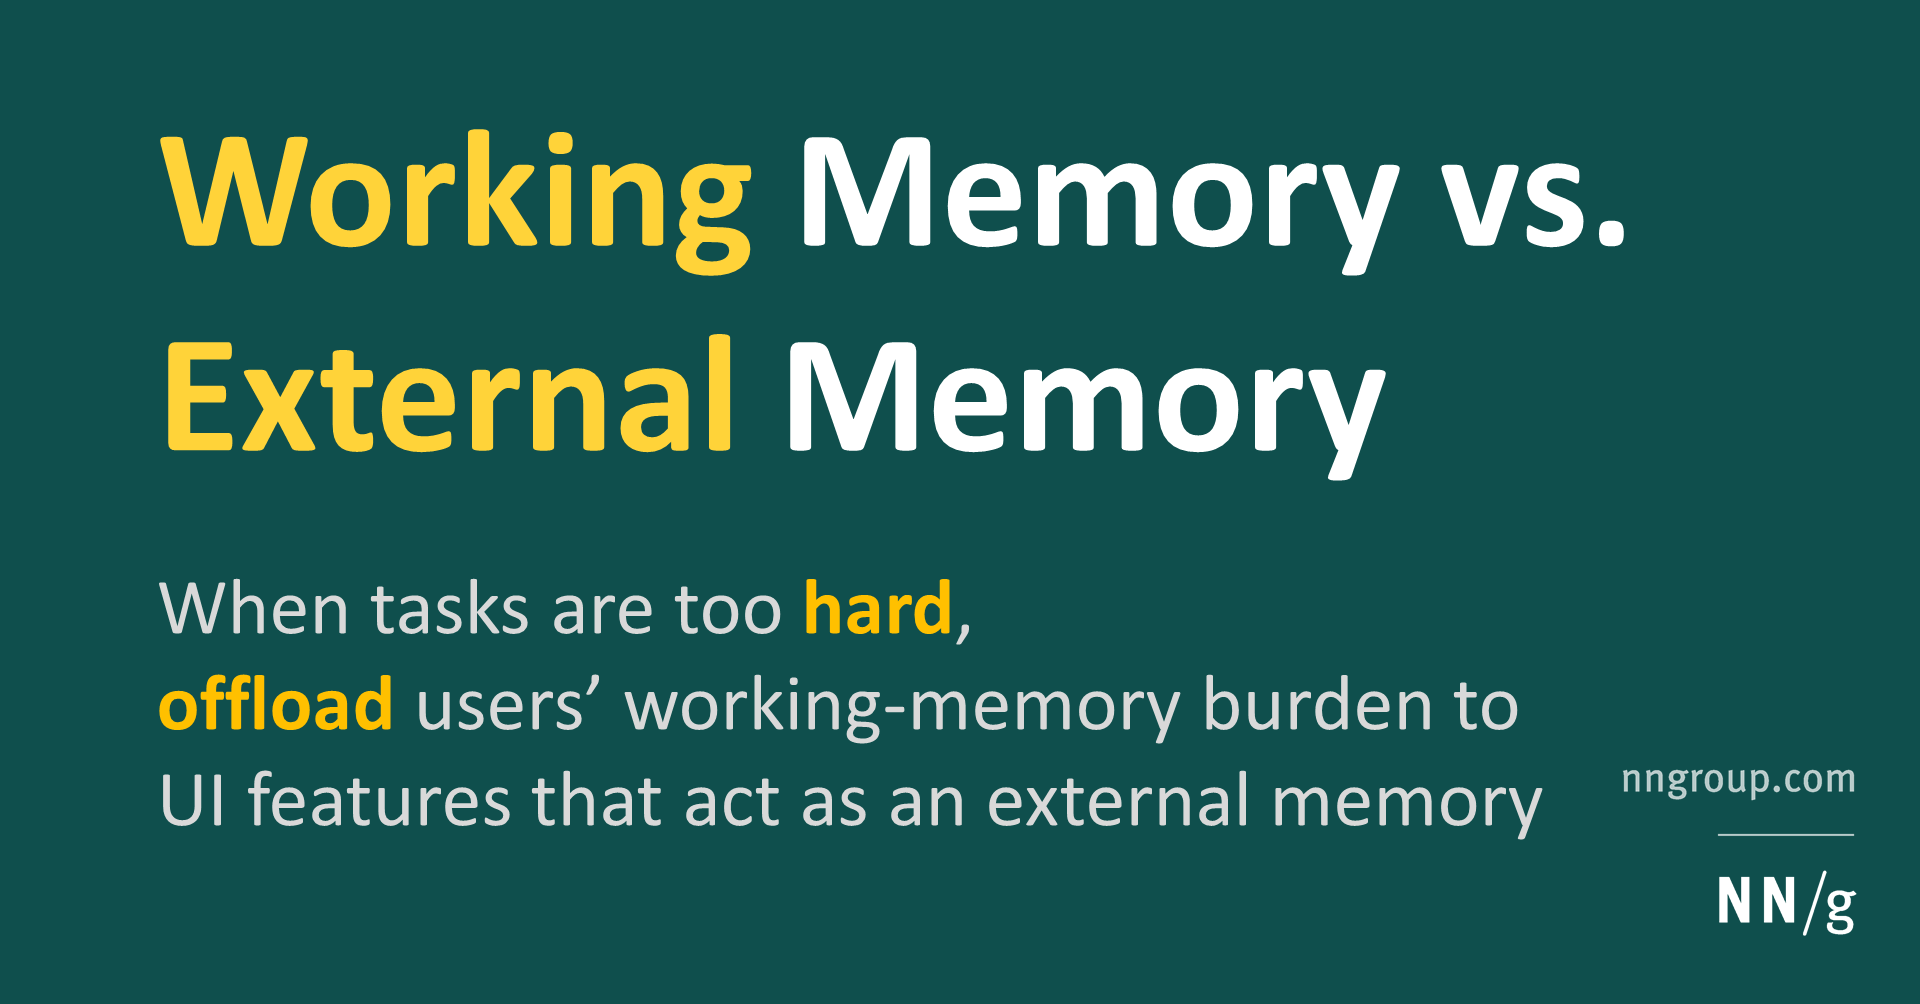 Working Memory and External Memory